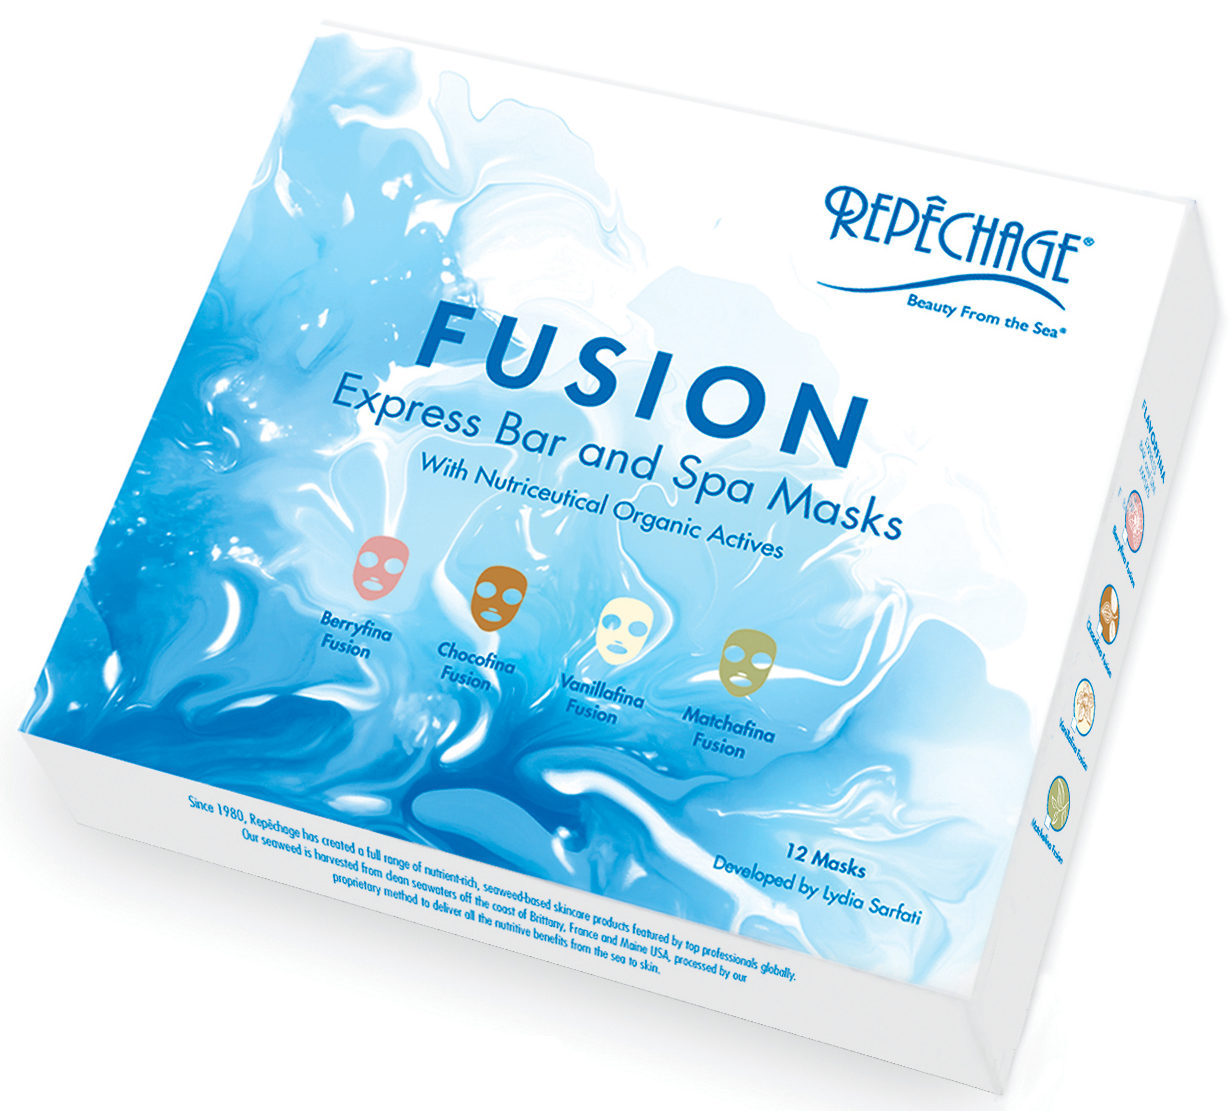 Repechage-Fusion-Box.jpg